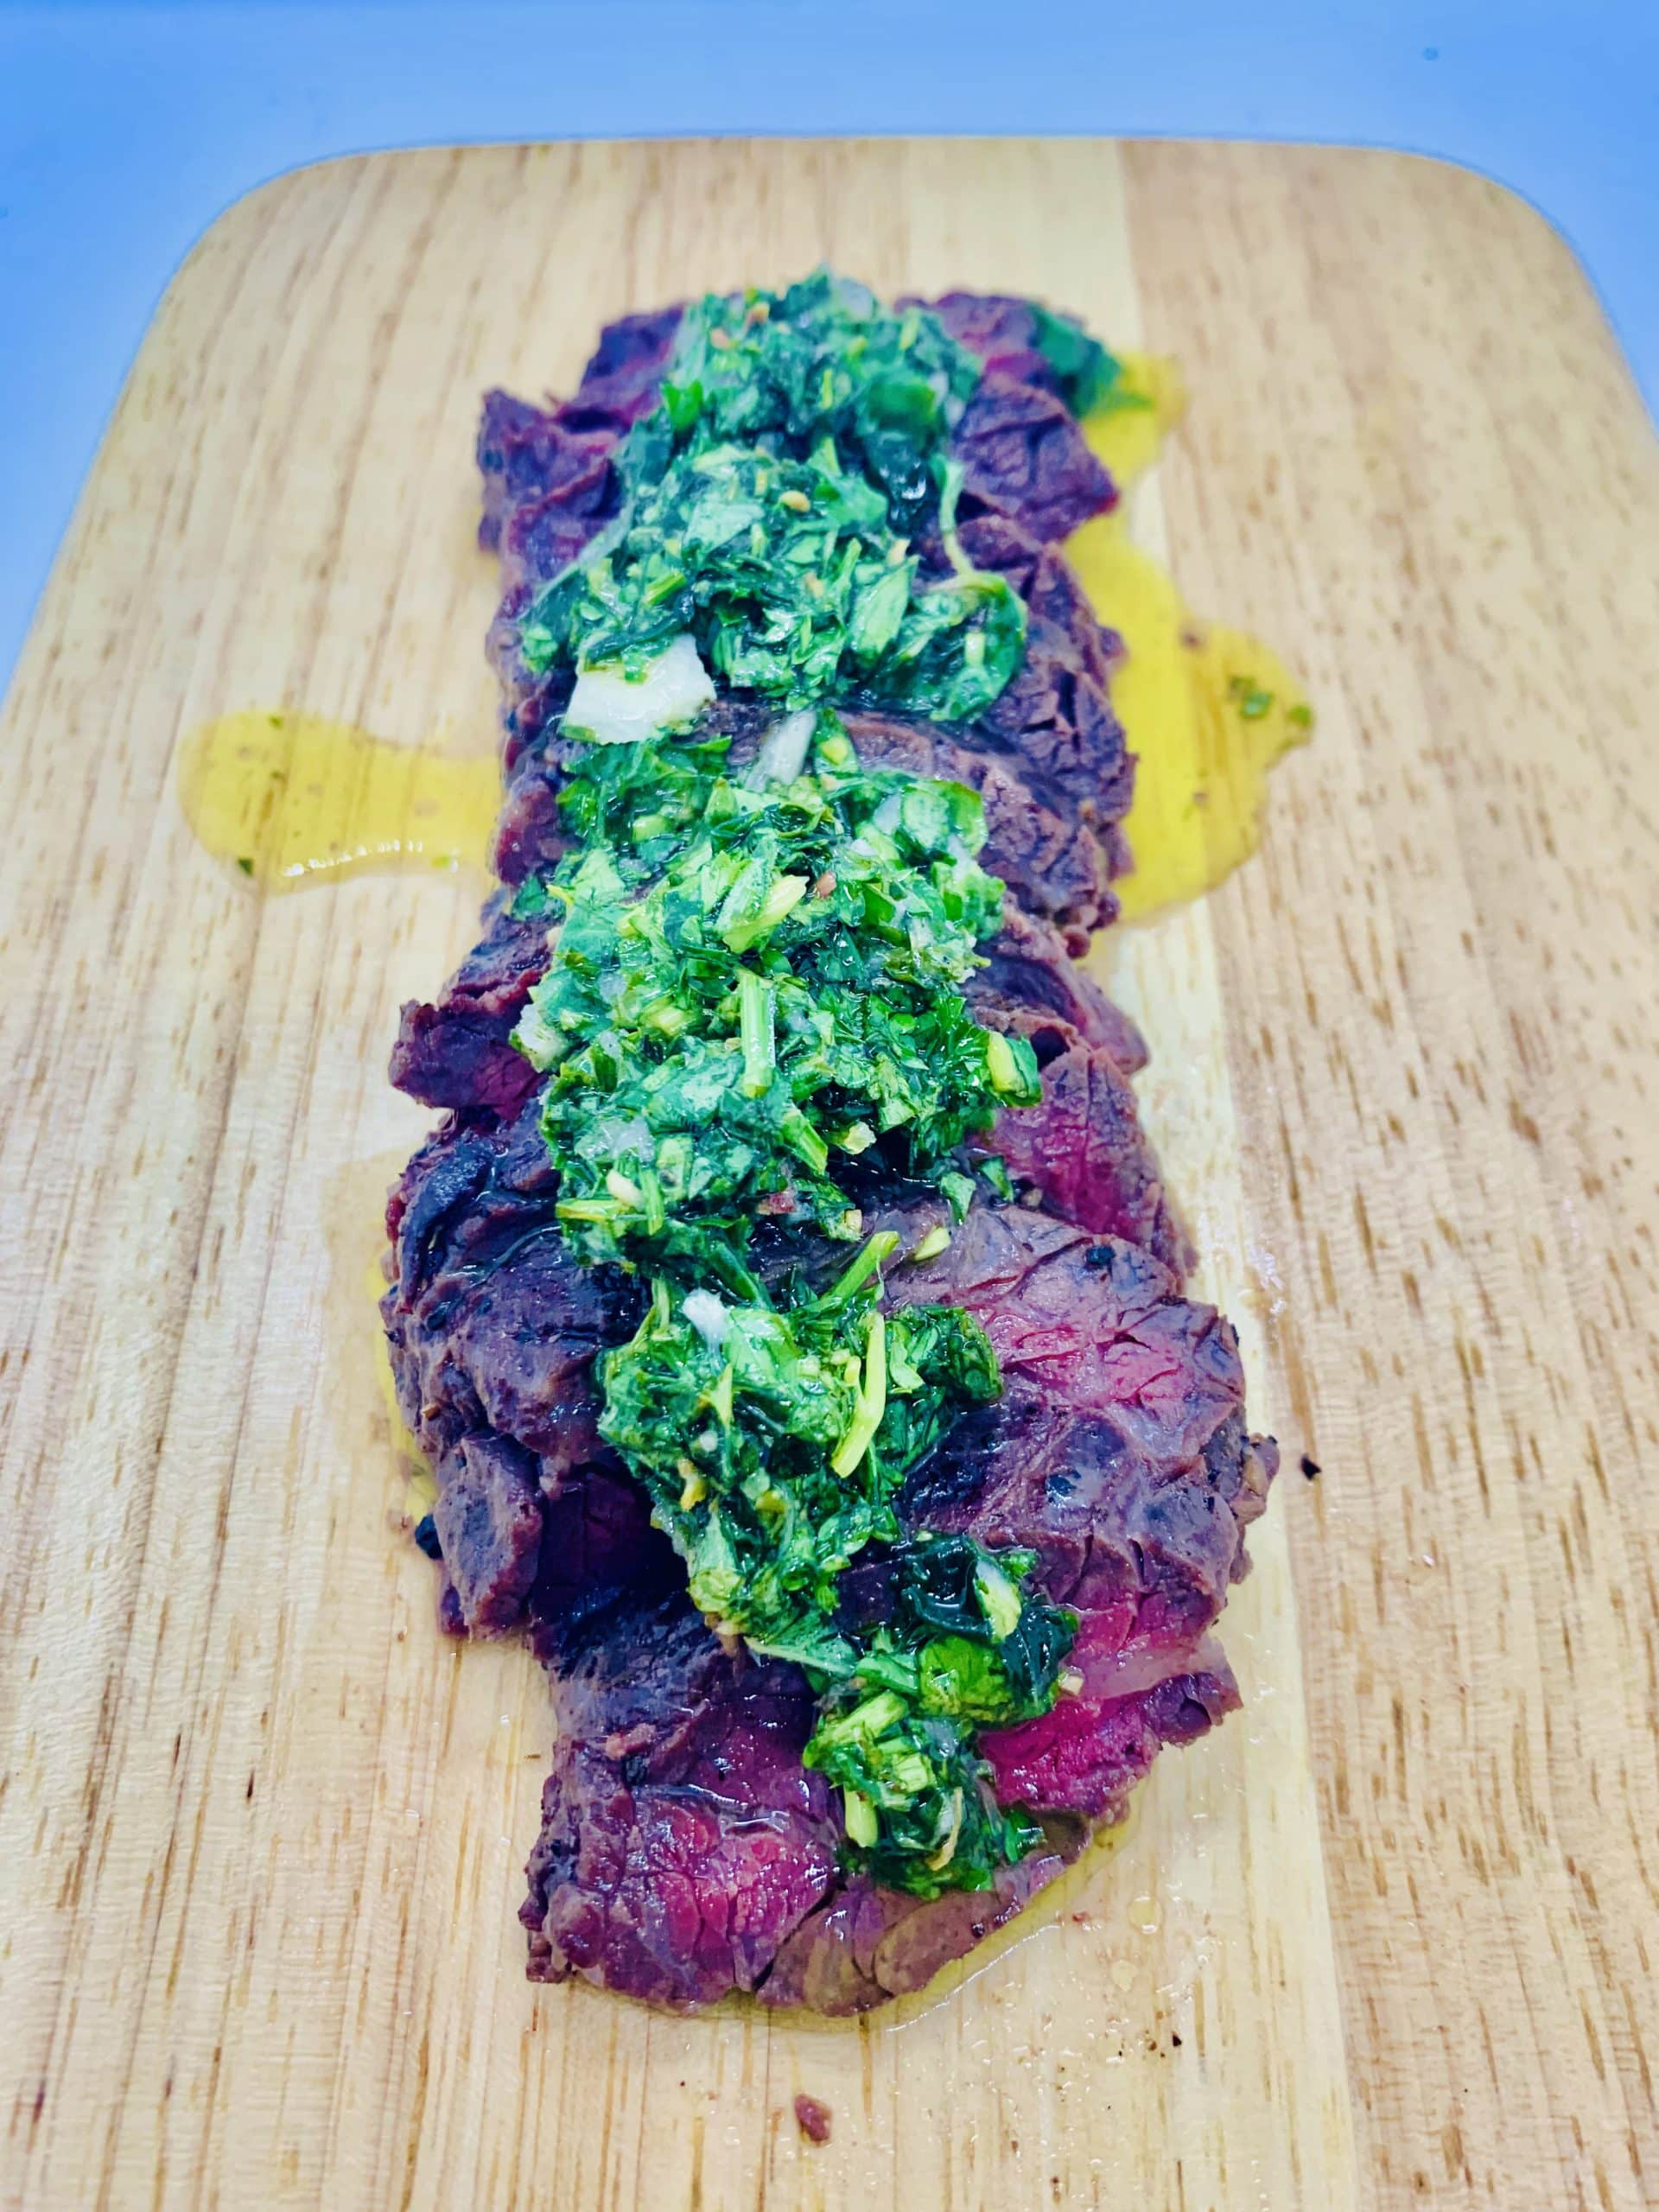 ChillaxBBQ Stay@Home Recipes #38 - Onglet 3-ways 'w' Chimichurri Sauce